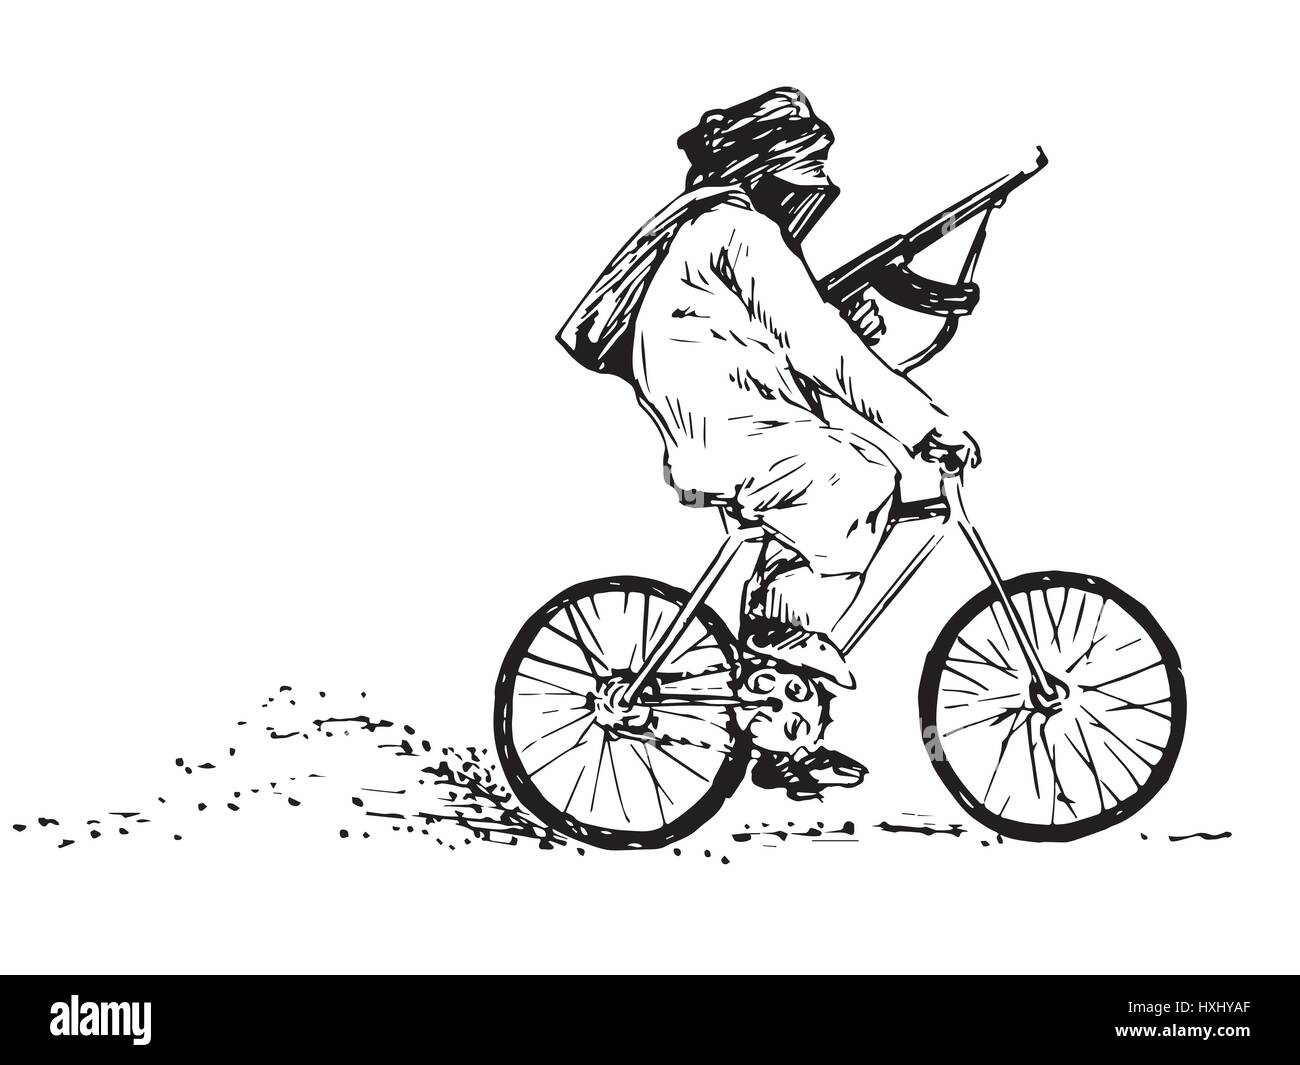 Terrorist with a gun with the face covered riding a bicycle, black and white isolated hand drawn vector illustration - Stock Image